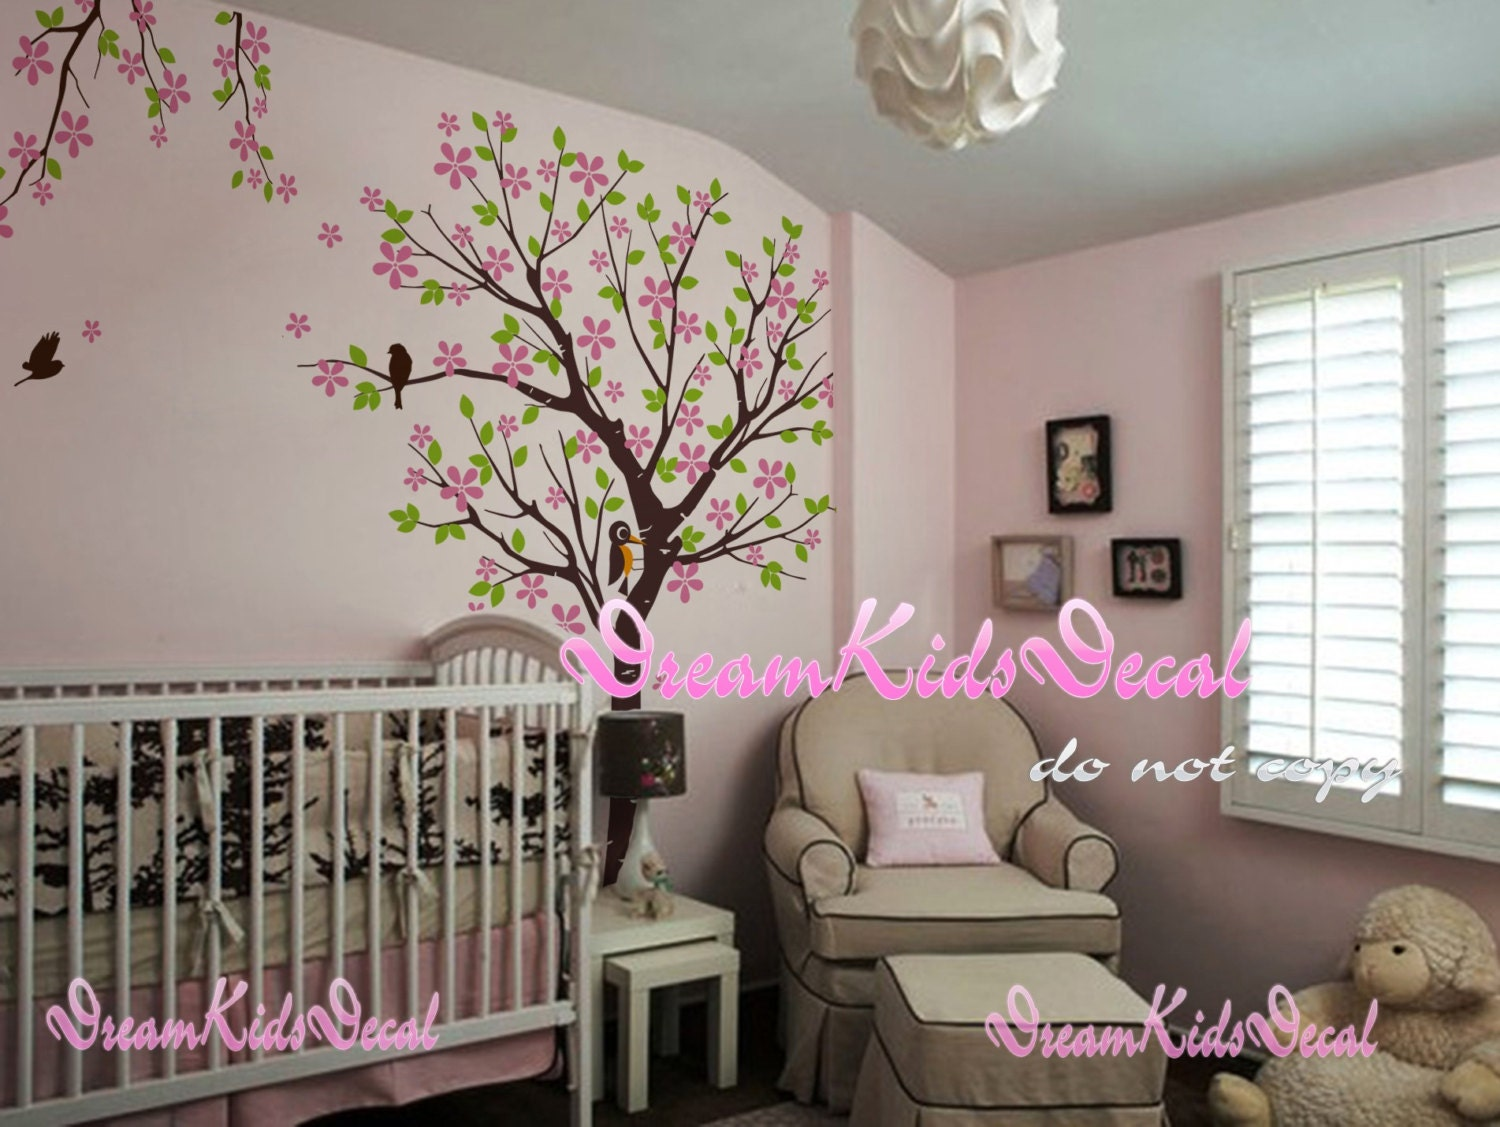 Cherry blossom tree wall decals nursery wall decals children for Baby nursery tree mural